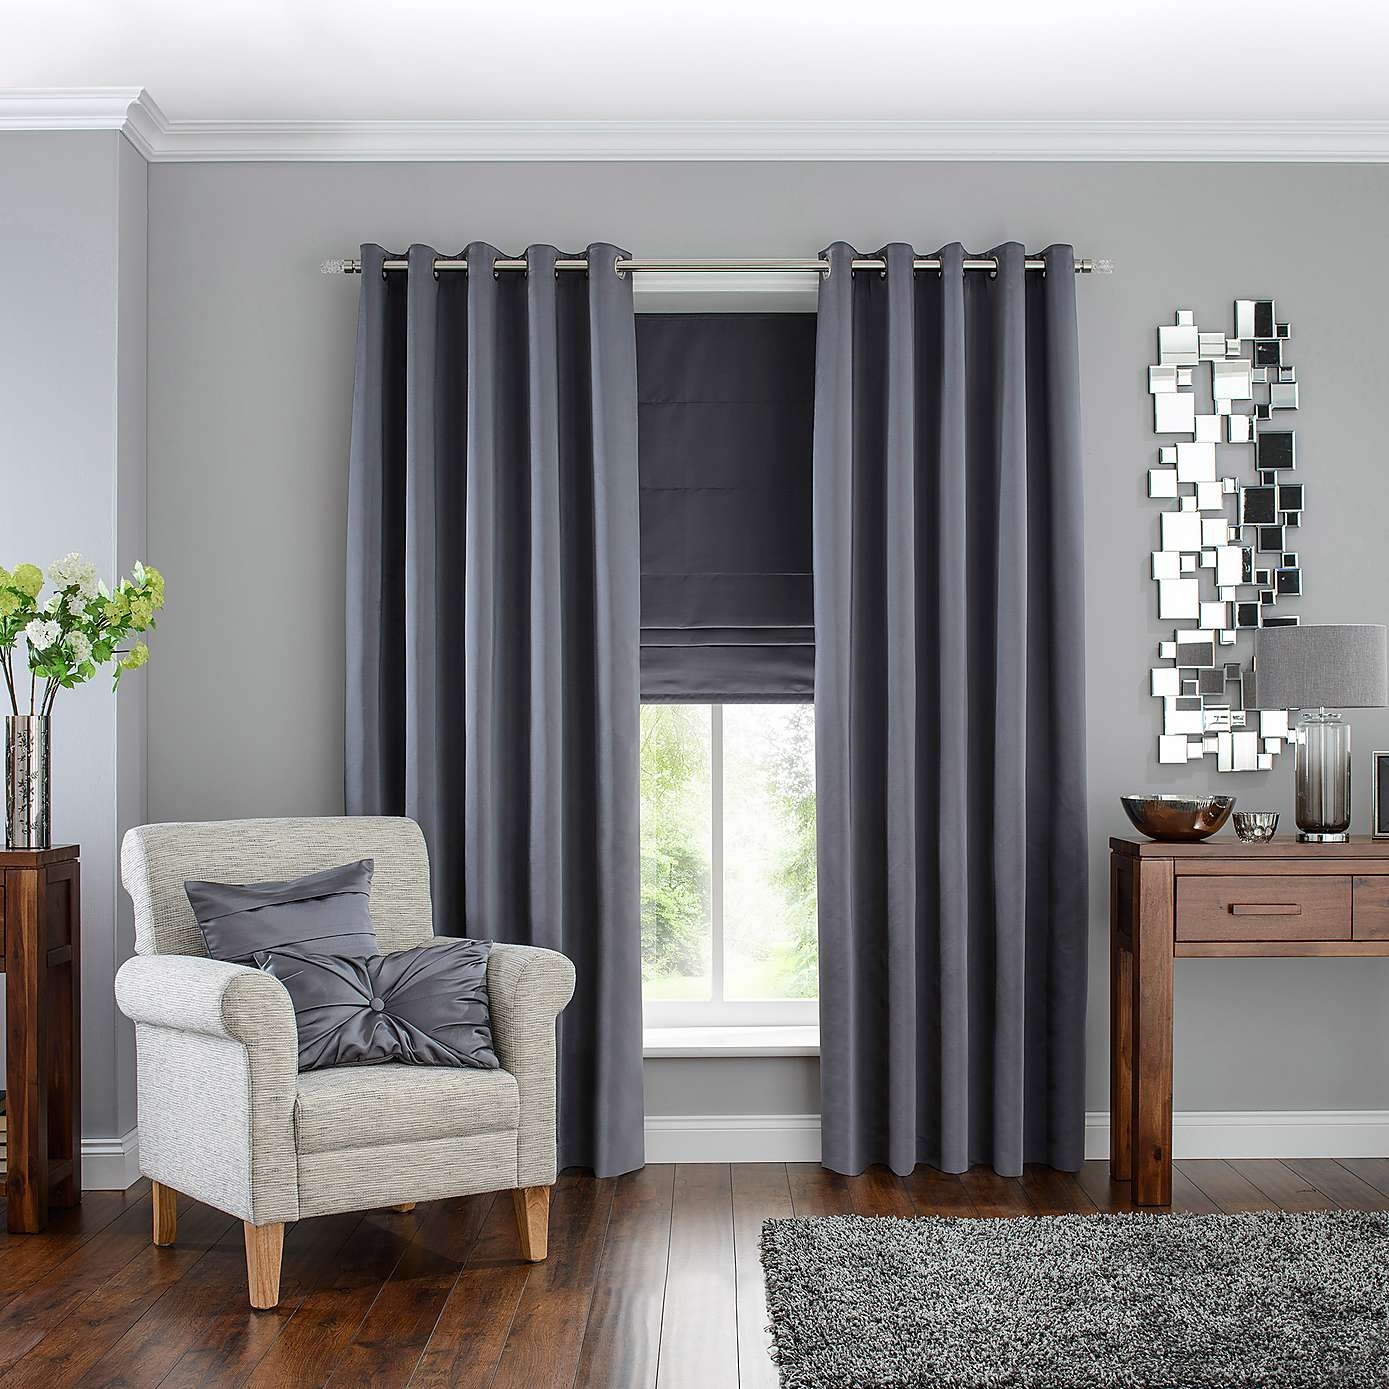 Hotel Grey Venice Blackout Eyelet Curtains Dunelm Divine Decor Throughout Blackout Curtains And Blinds (Image 10 of 15)